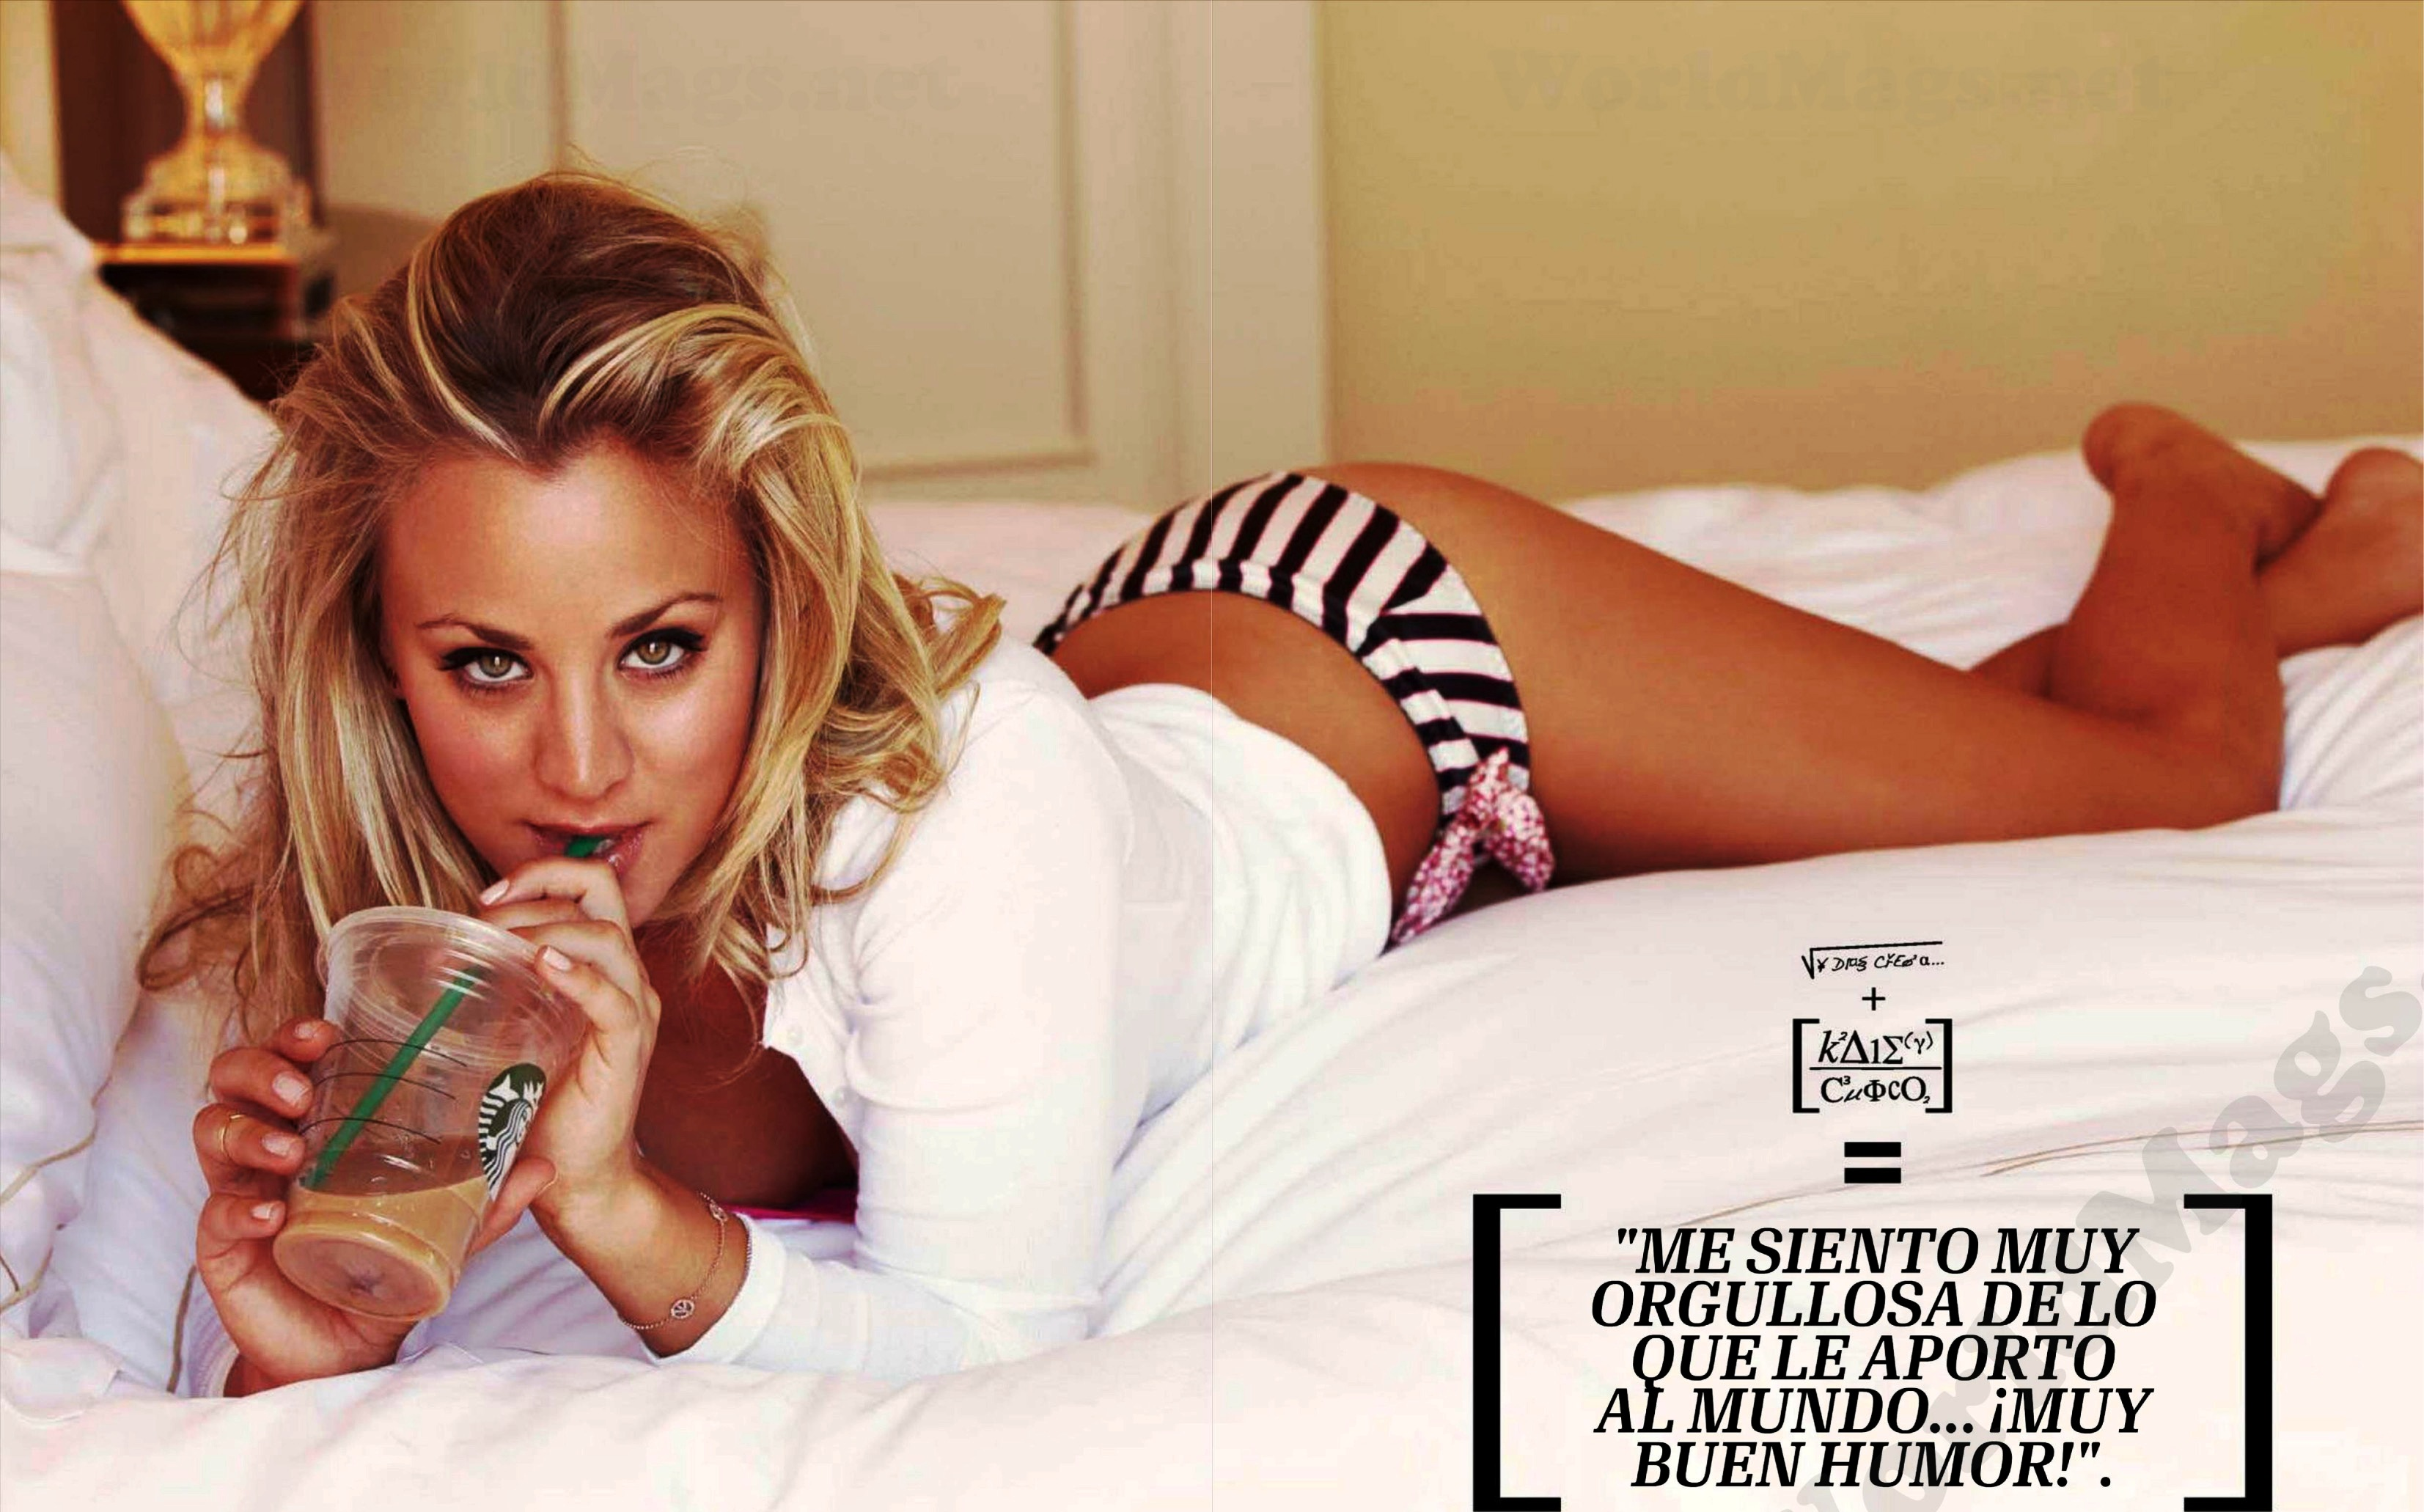 Kaley Cuoco Posed For Esquire, But Did She Make This Pose? Doubt It ...